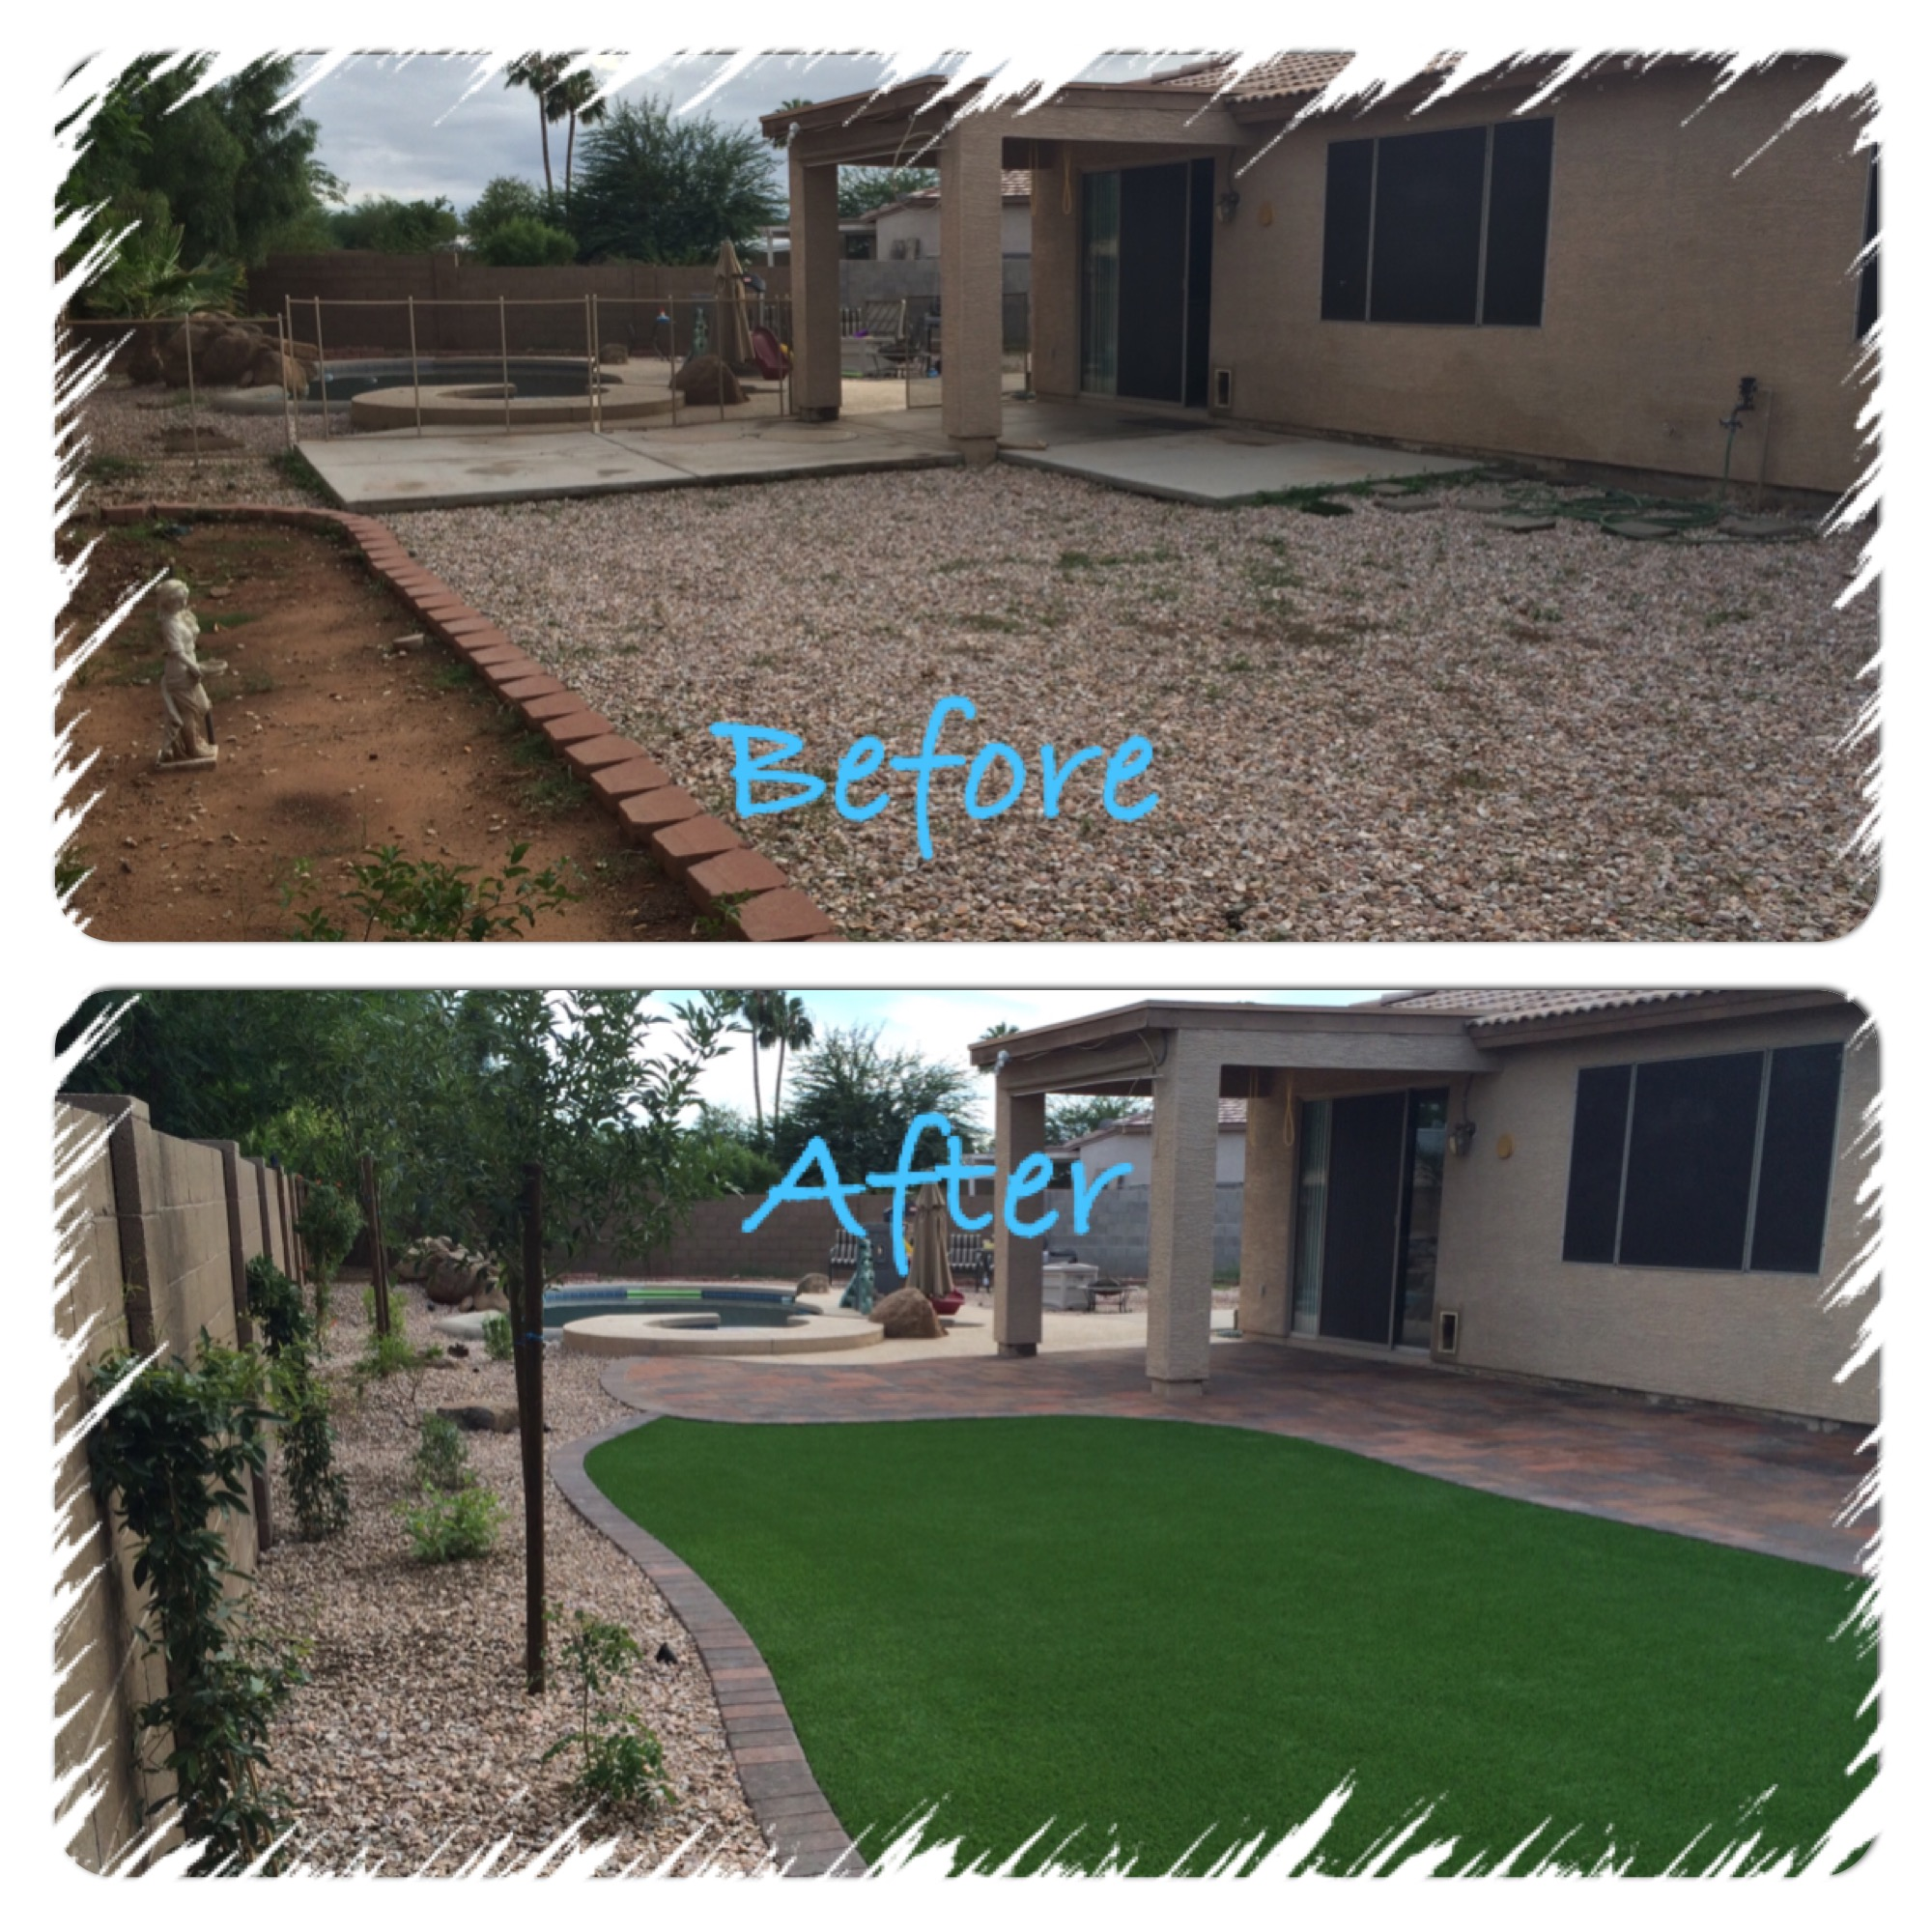 Patio designs archives arizona living landscape design - Backyard landscape designs ...